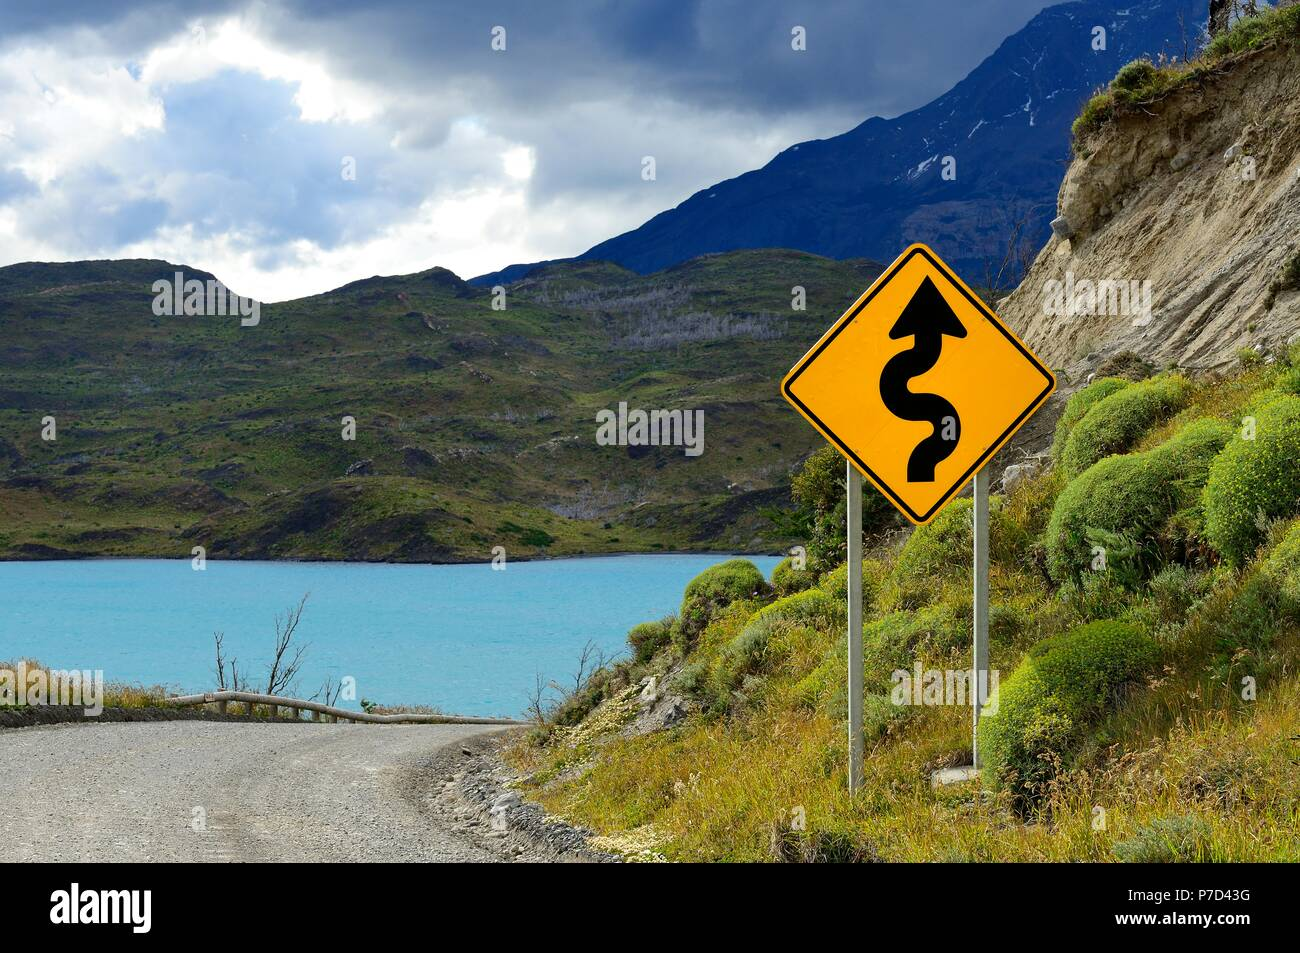 Road Sign Attention curves at Lago Pehoe, Torres del Paine National Park, Última Esperanza Province, Chile - Stock Image